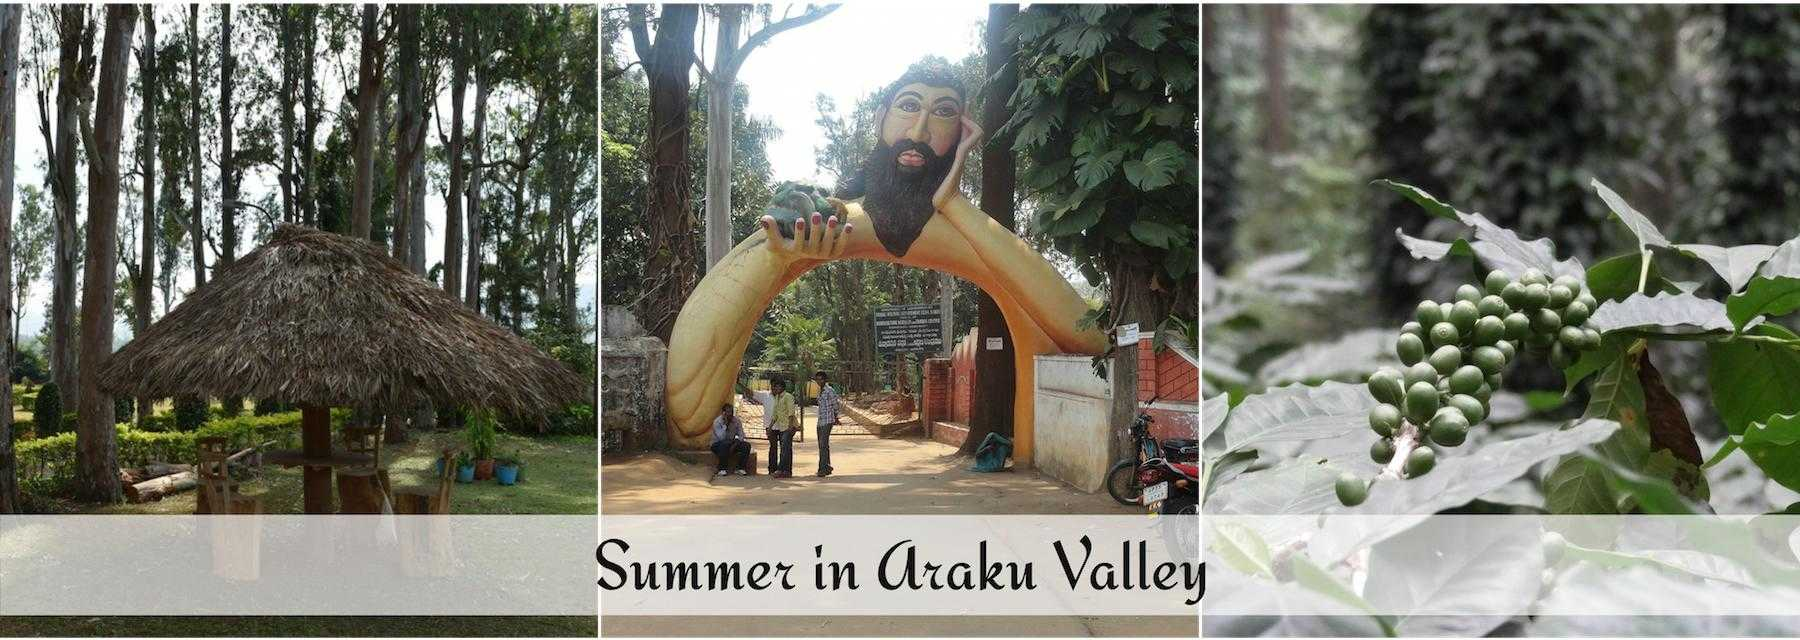 summer-in-araku-valley.jpg